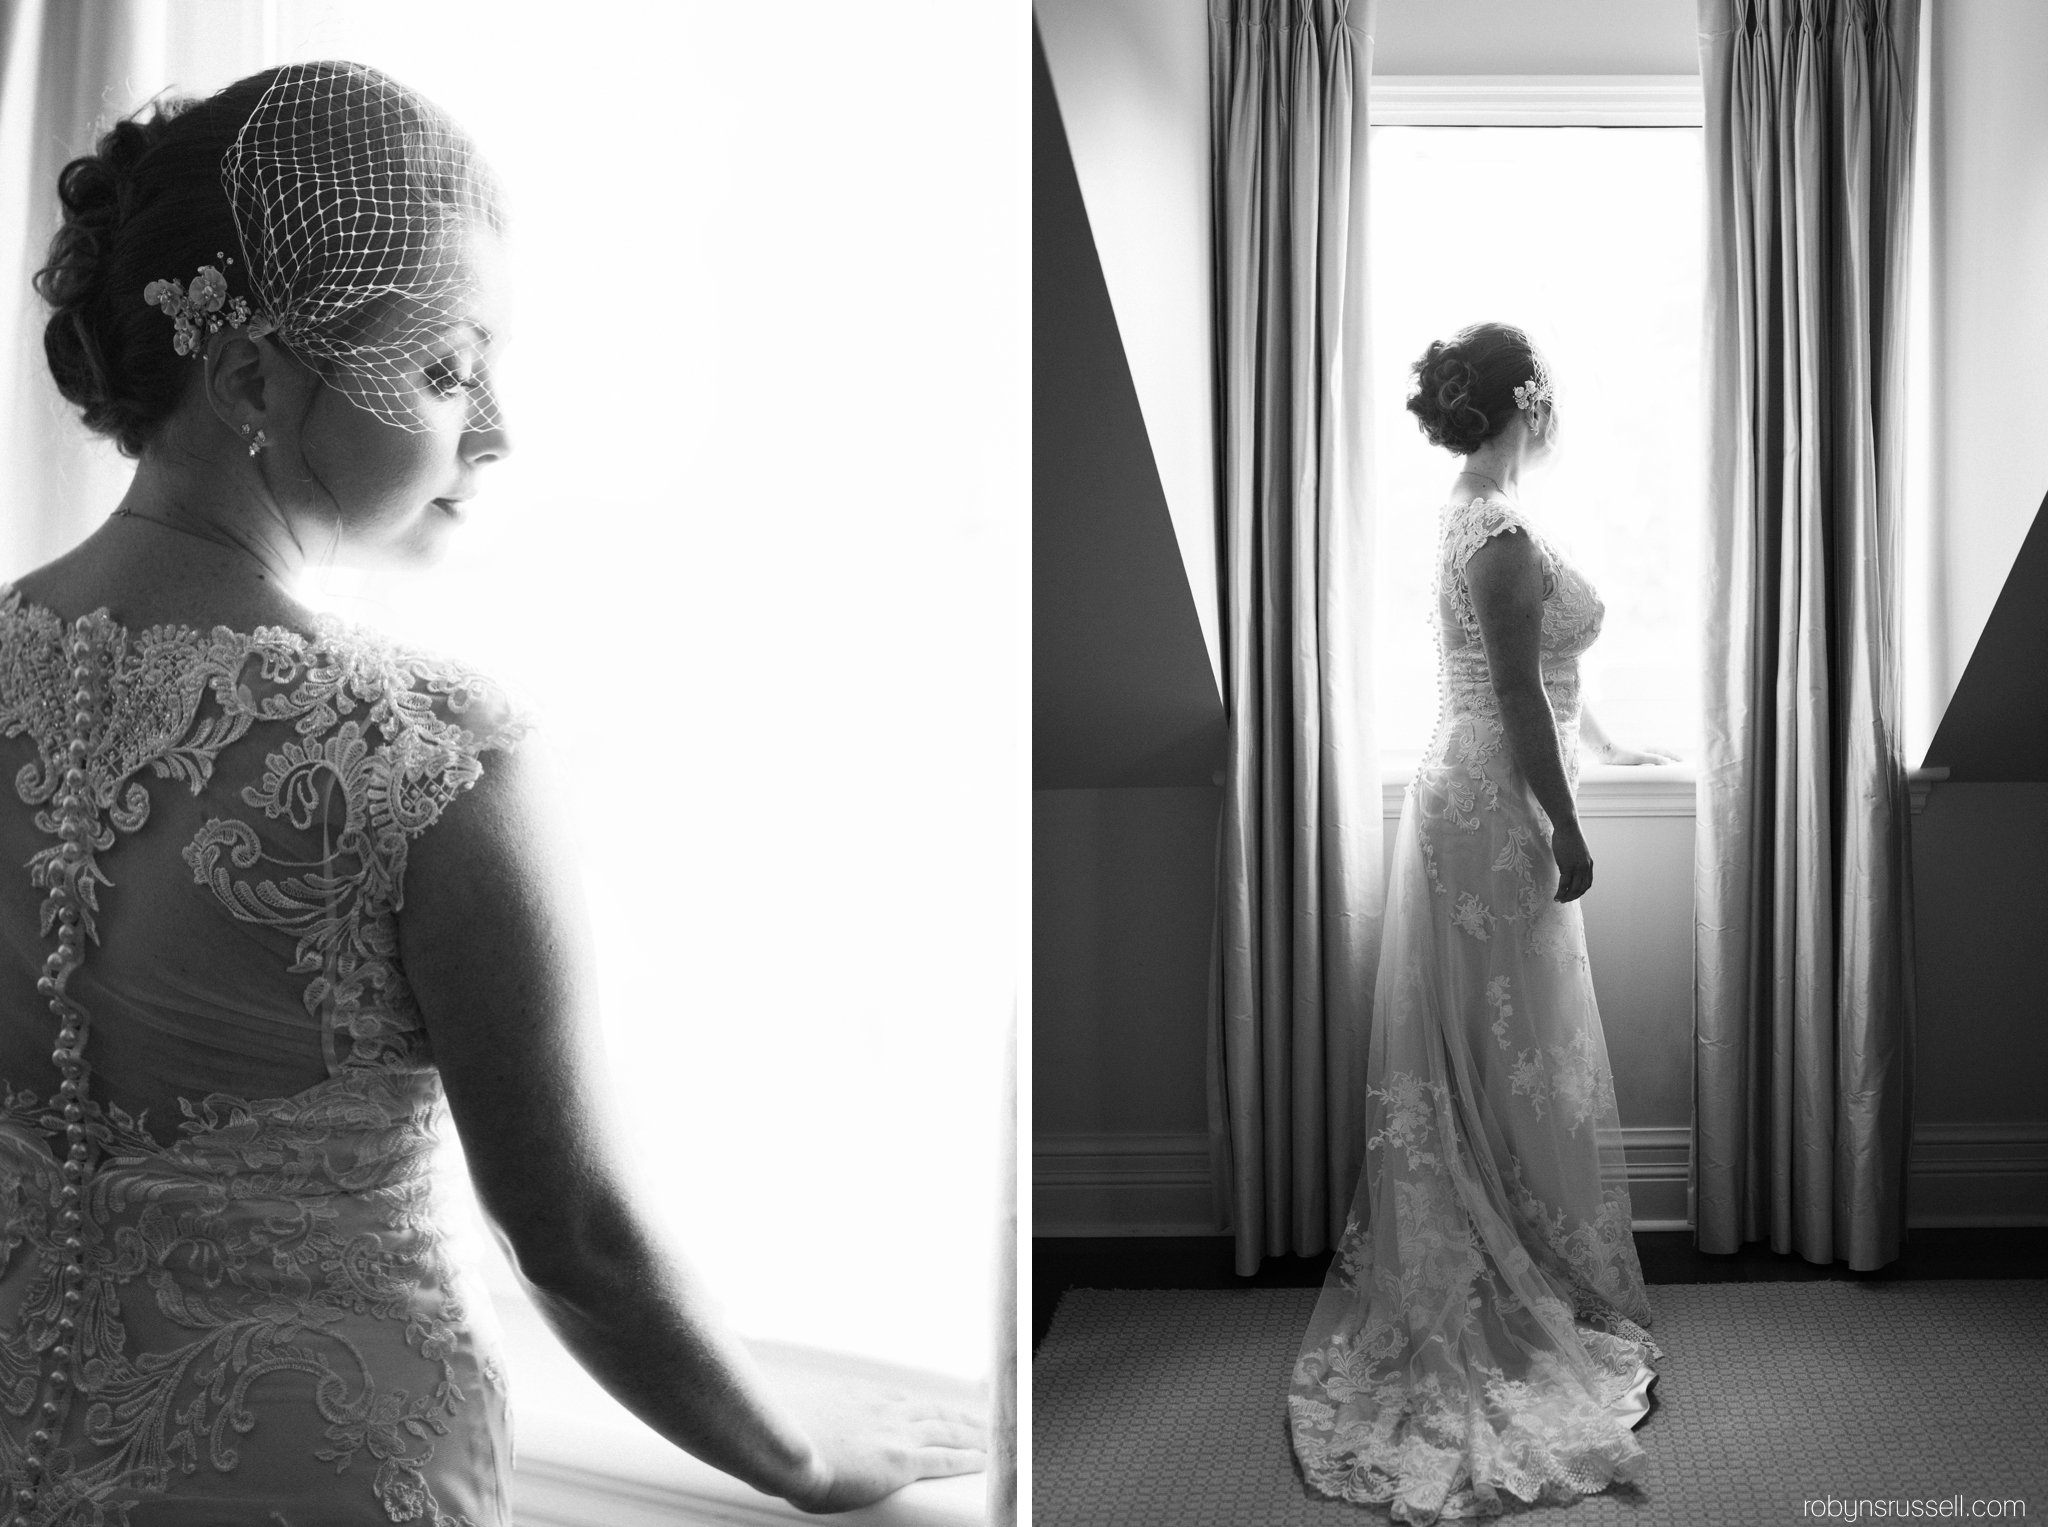 19-beautiful-black-and-white-photo-bride-to-be-langdon-hall.jpg